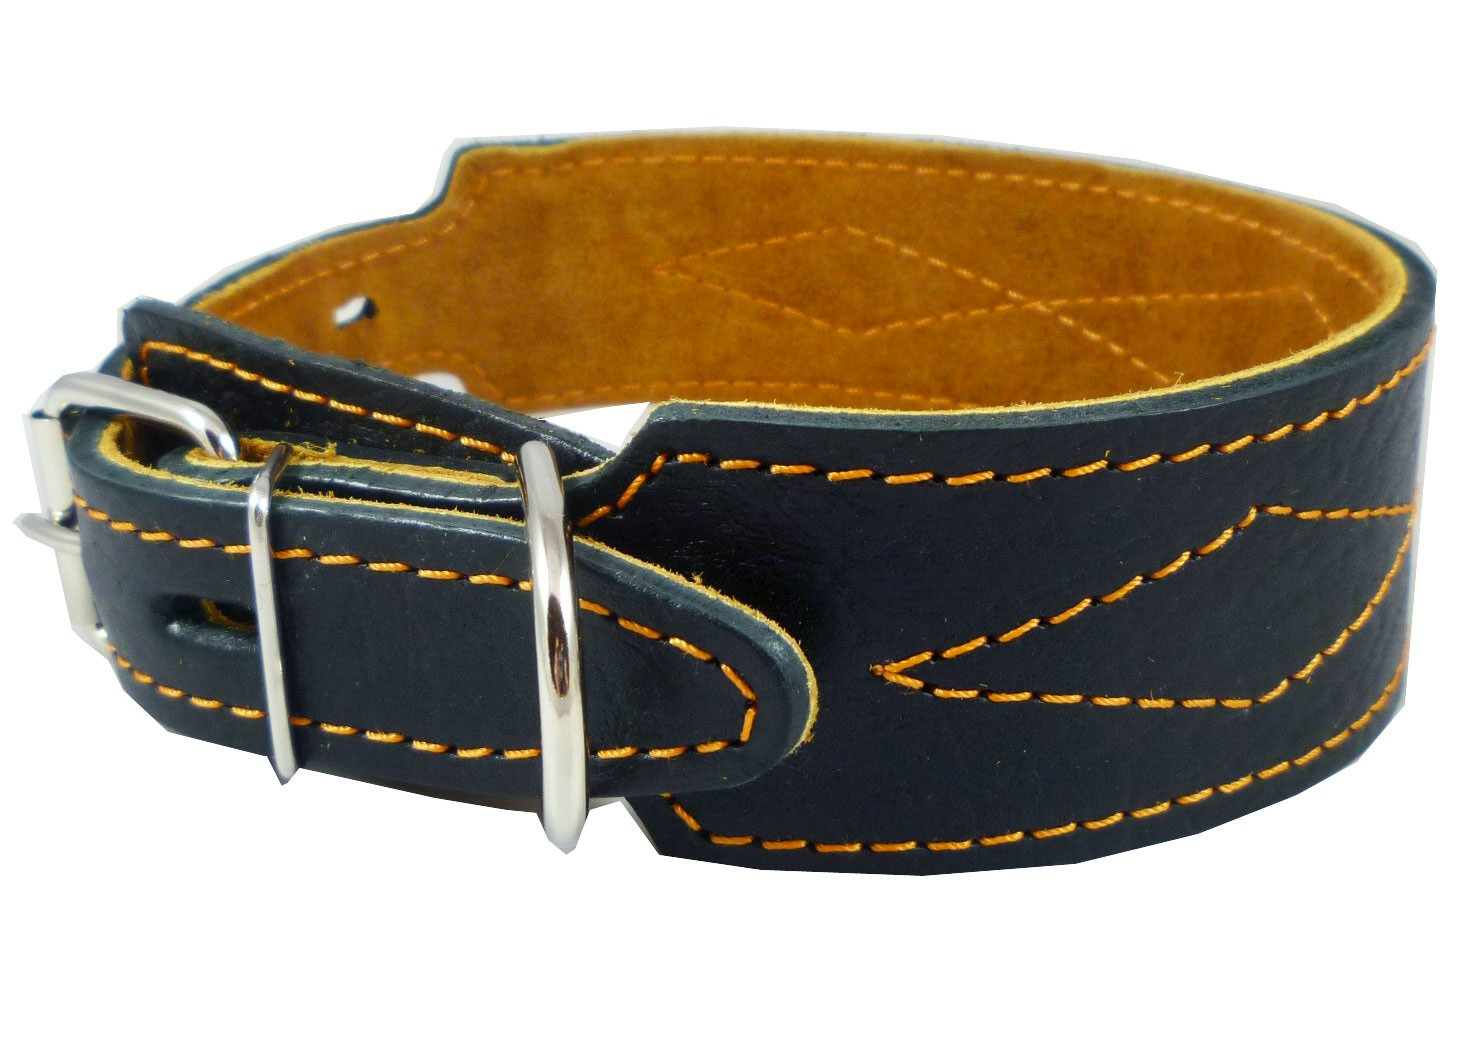 Real Leather Tapered Dog Collar 1.75  Wide, Fits 15 -19  Neck, Medium